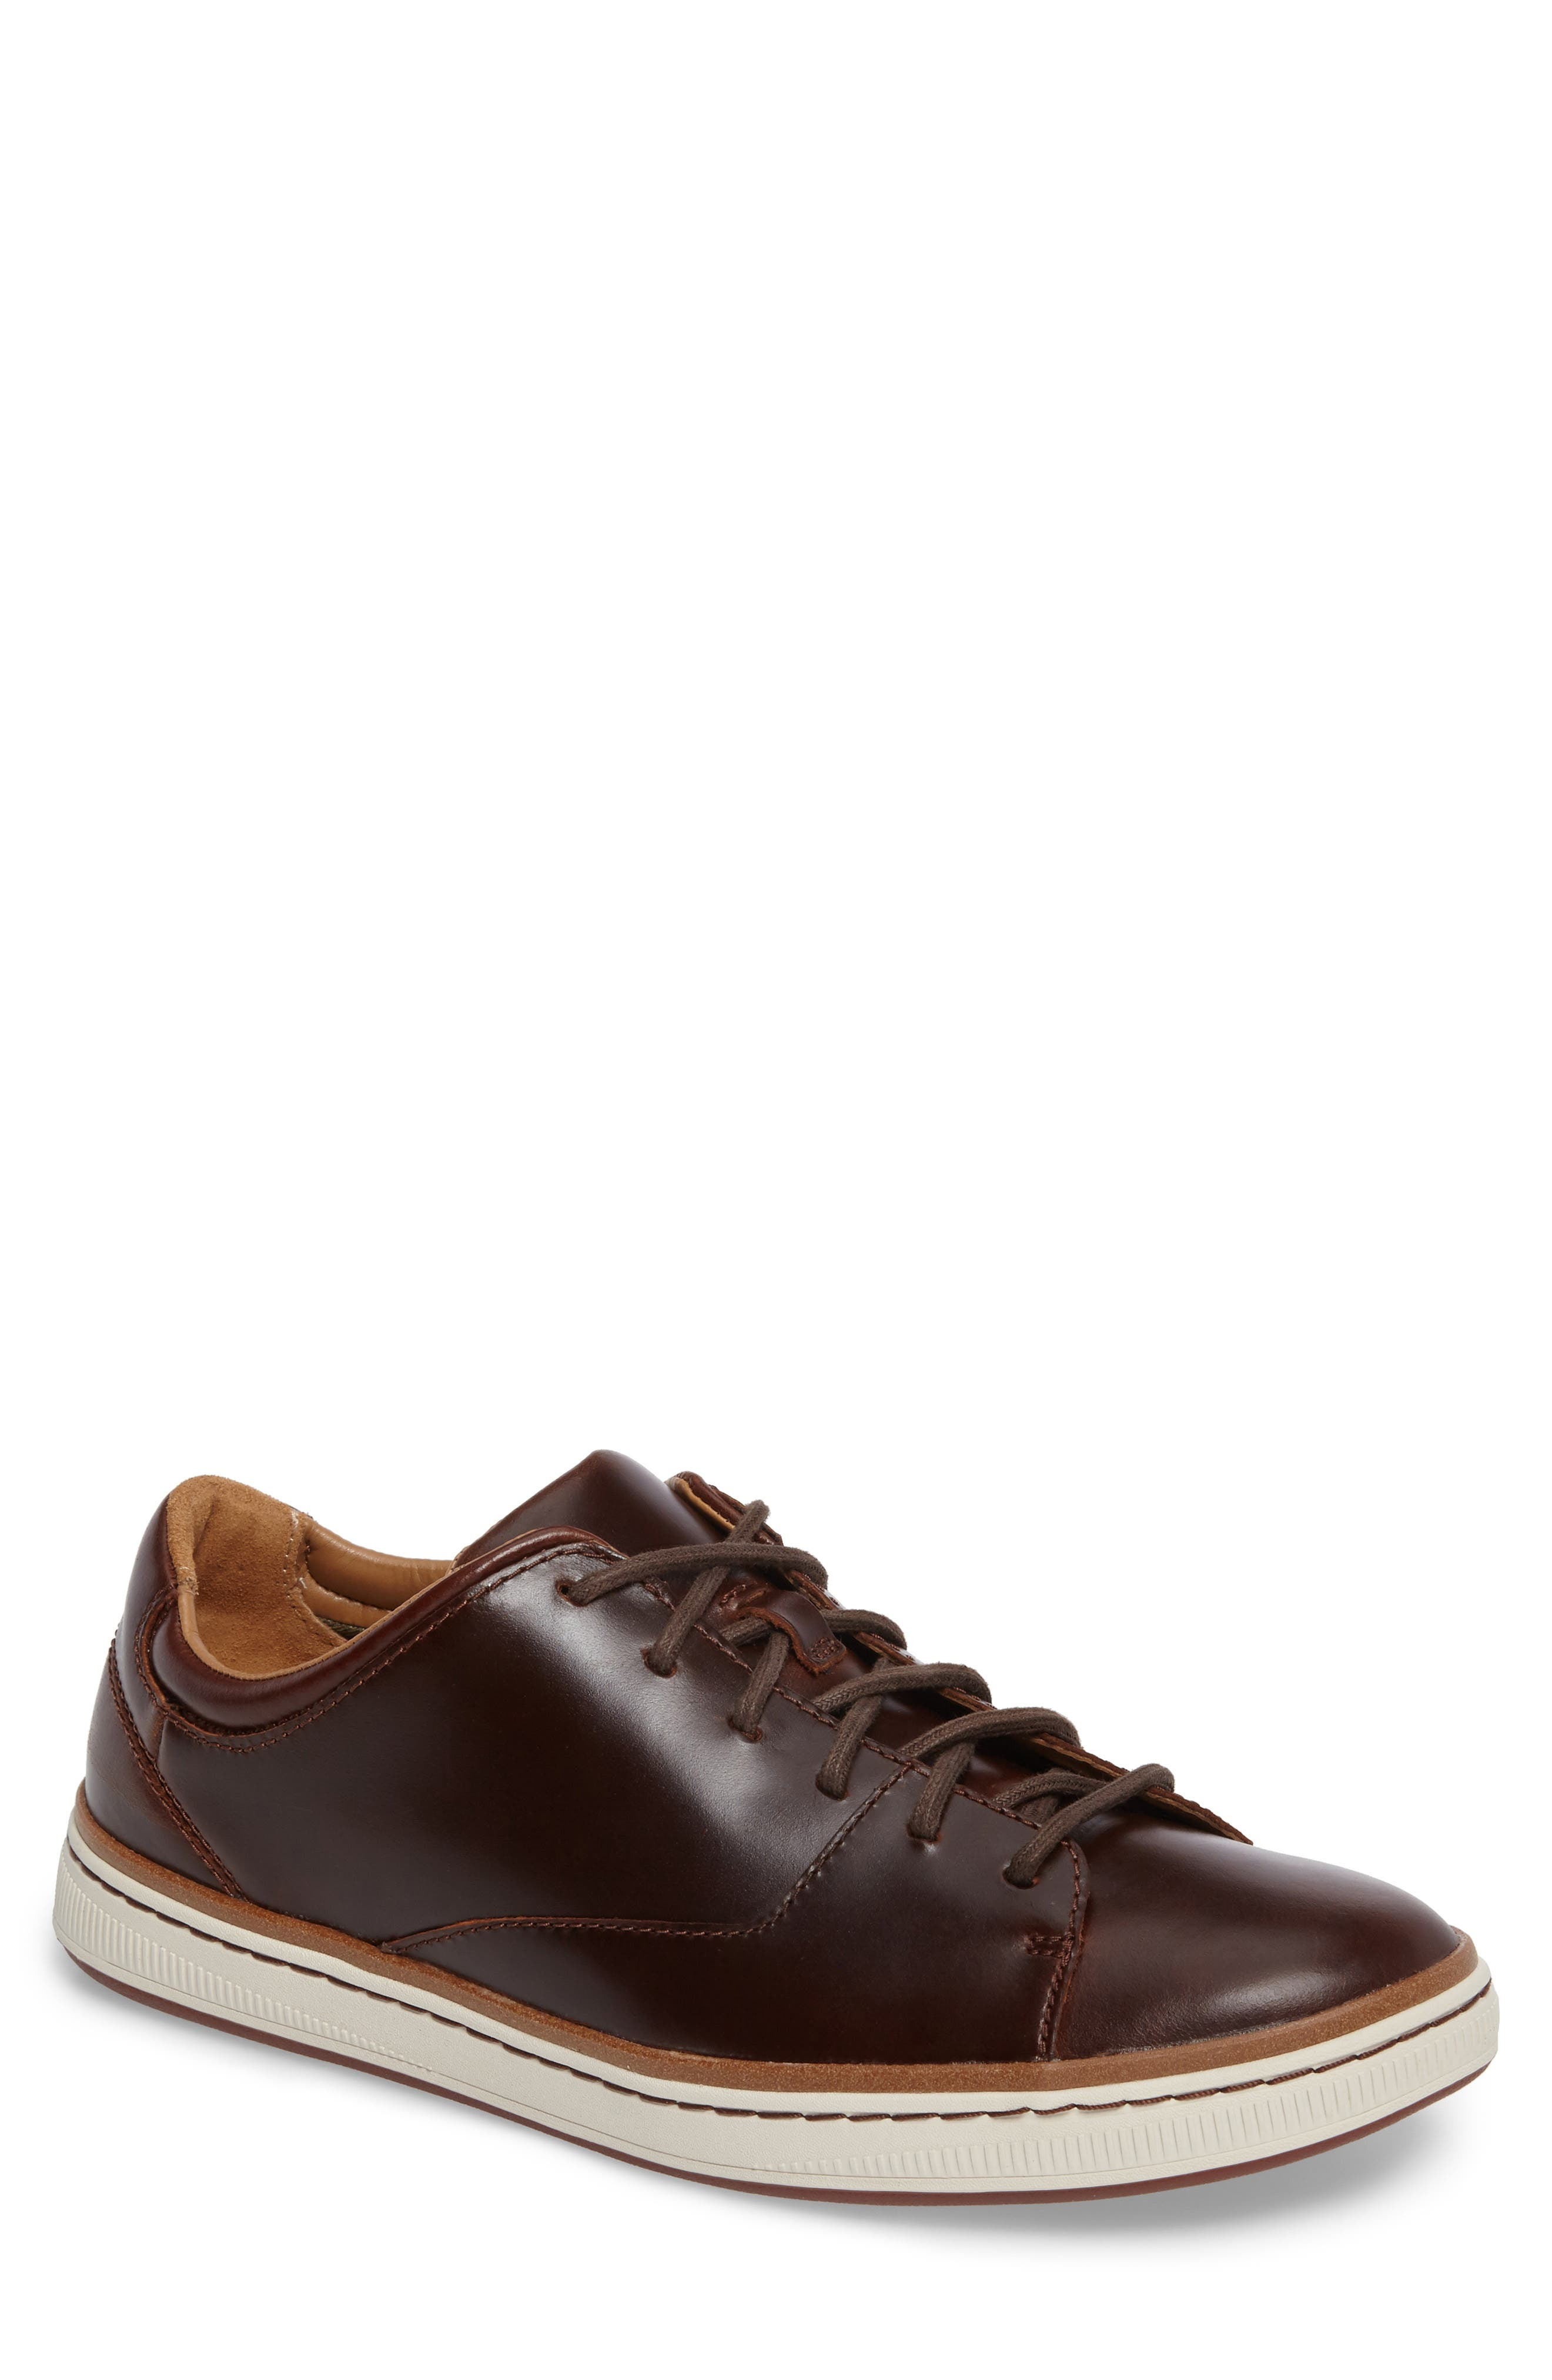 Norsen Lace Sneaker,                         Main,                         color, Dark Tan Leather